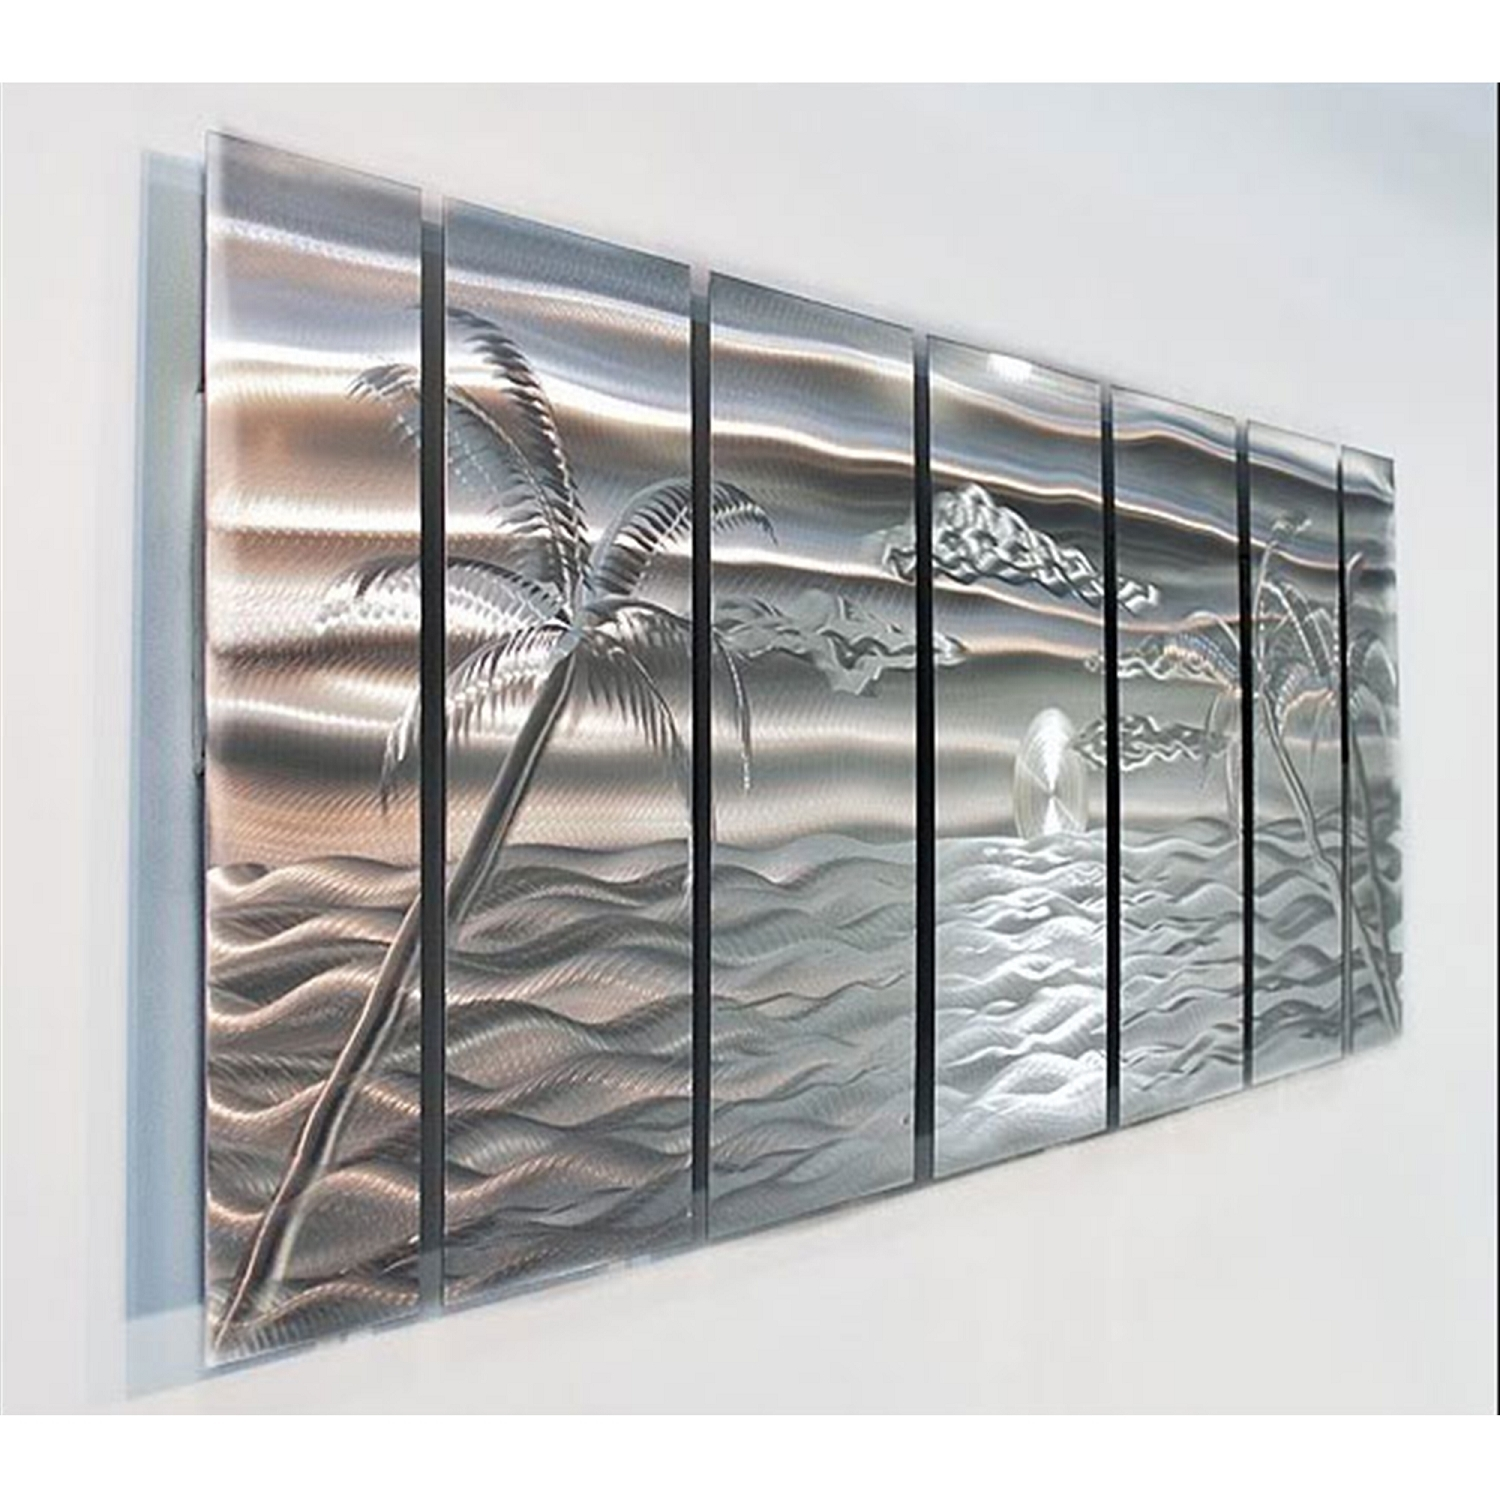 Classy 10+ Abstract Metal Wall Art Design Inspiration Of Best 25+ For 2018 Kindred Abstract Metal Wall Art (View 9 of 20)